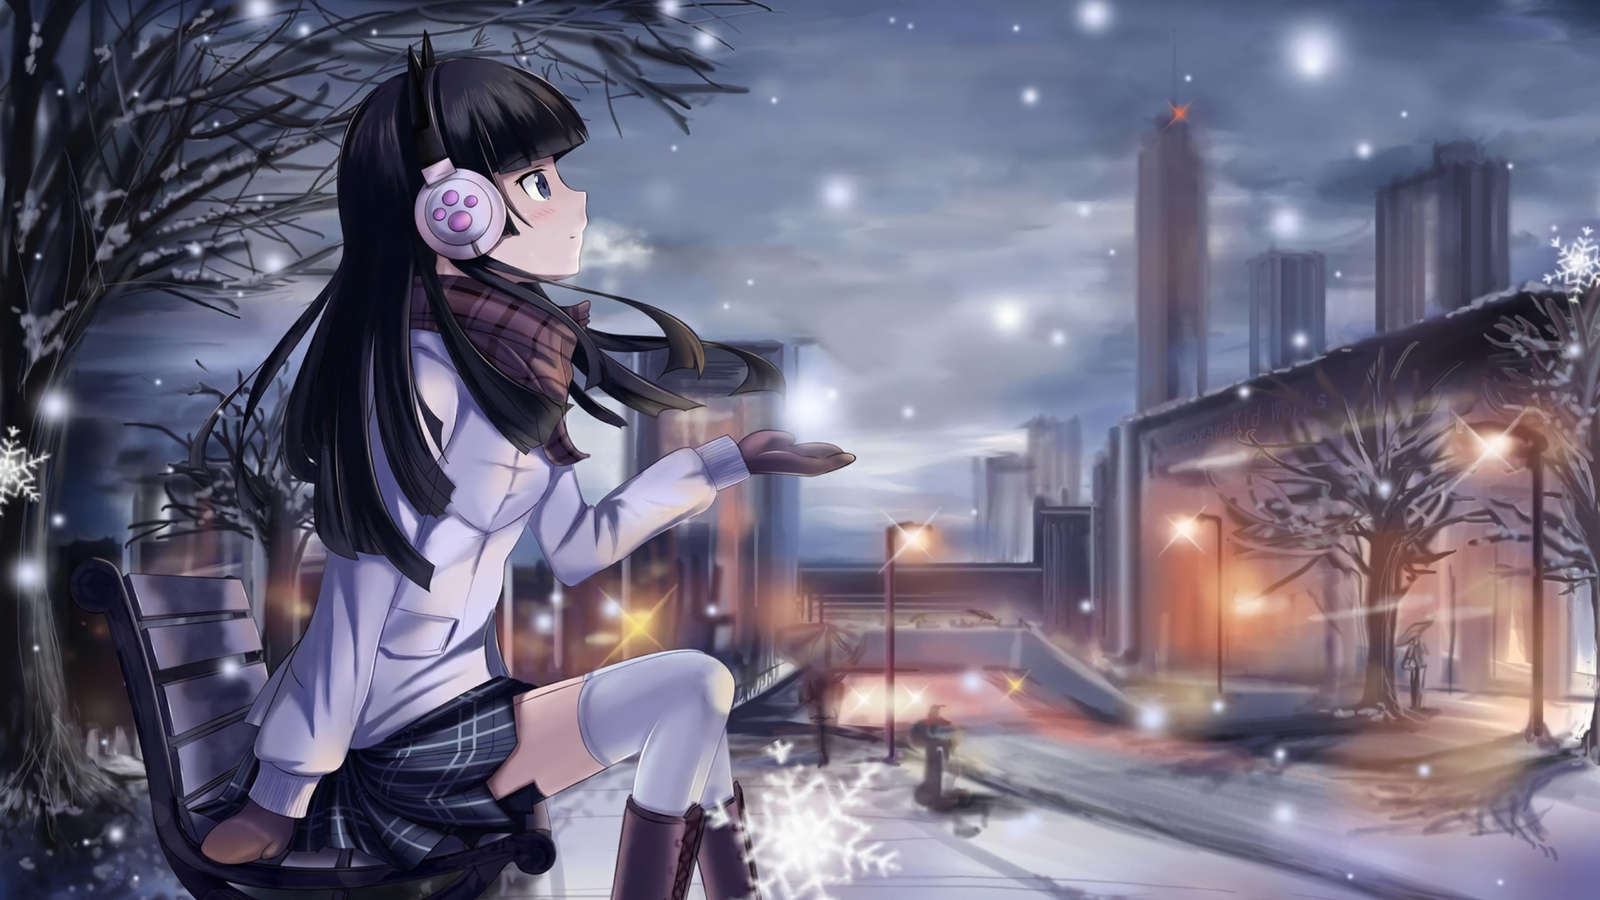 anime-girl-winter-night-5k-bh.jpg